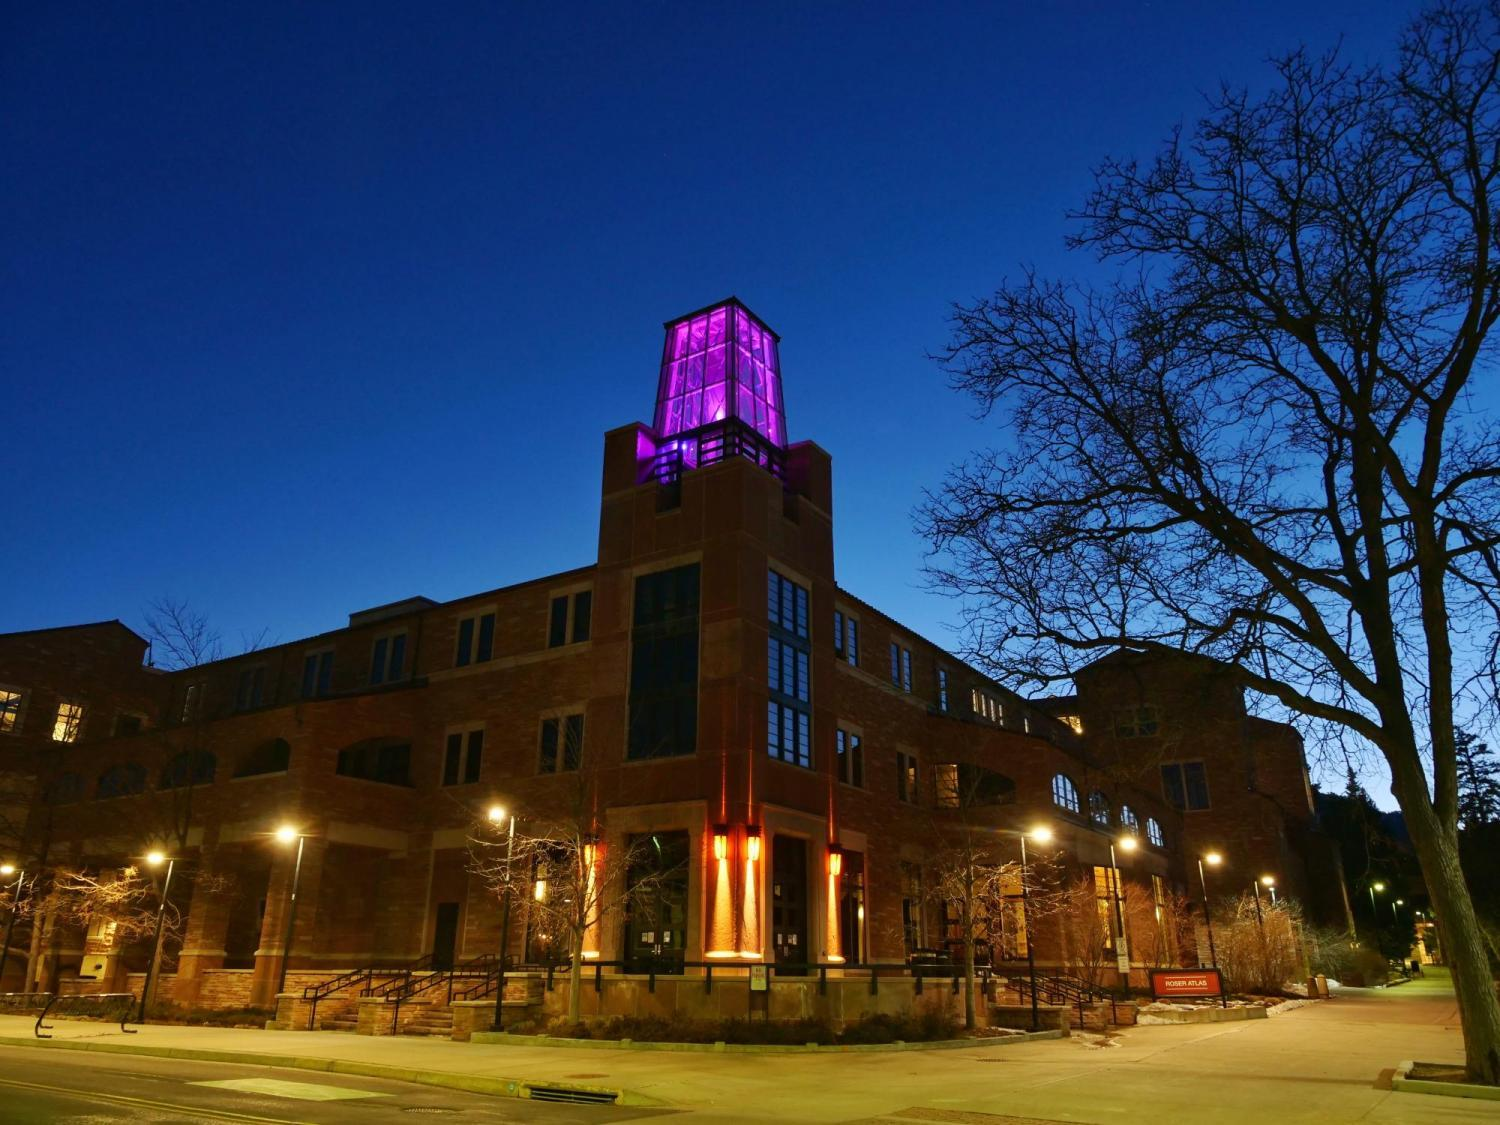 ATLAS building with a magenta-colored light display.